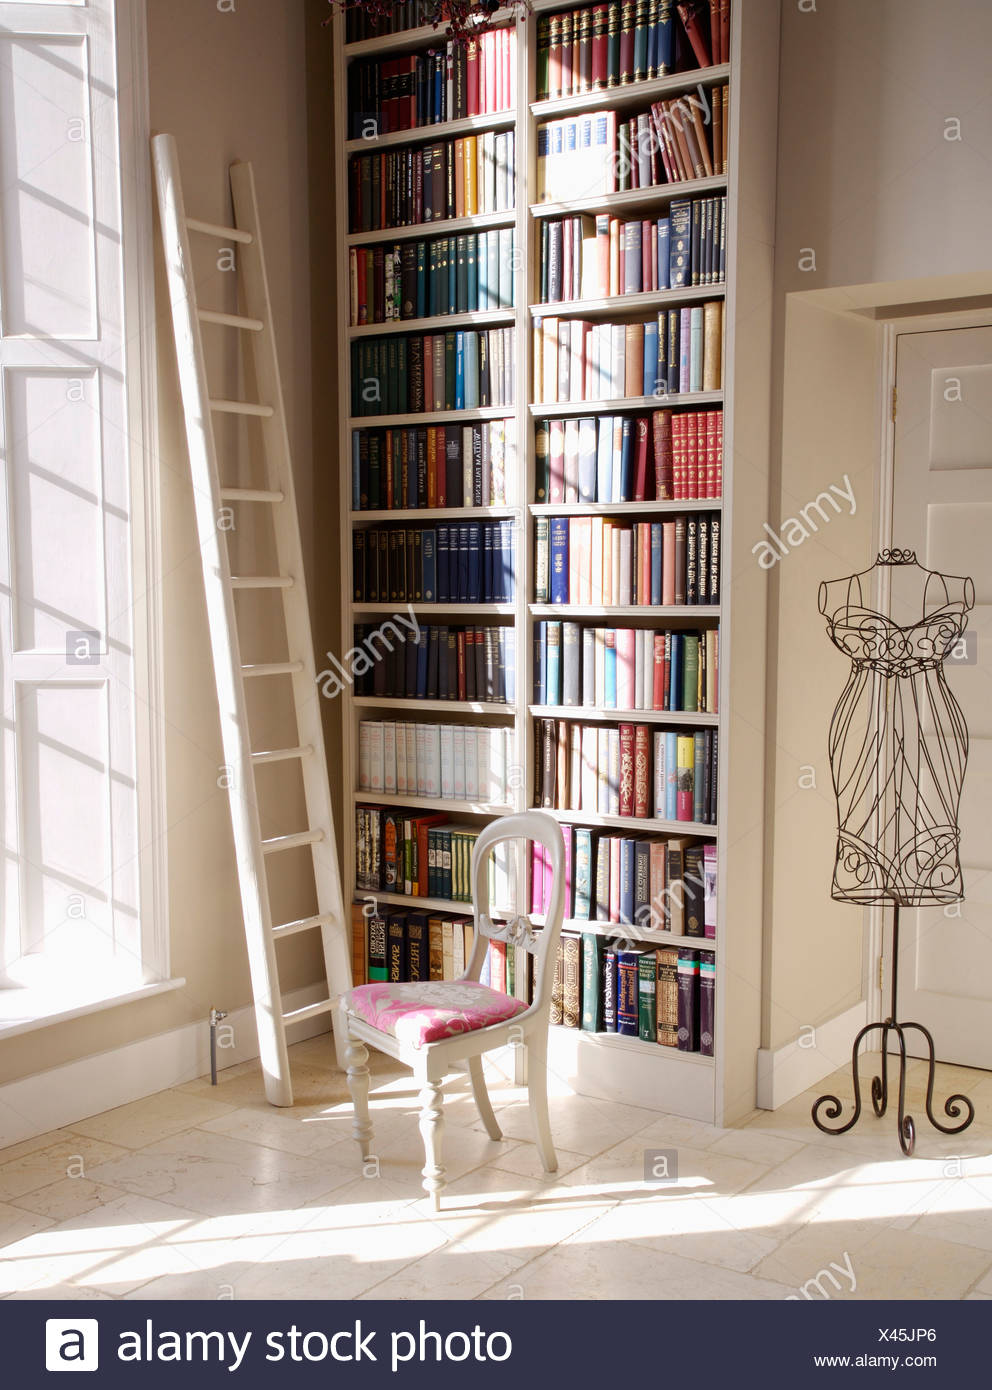 White ladder beside floor to ceiling bookshelves in hall with dressmakers dummy and white painted chair with upholstered seat